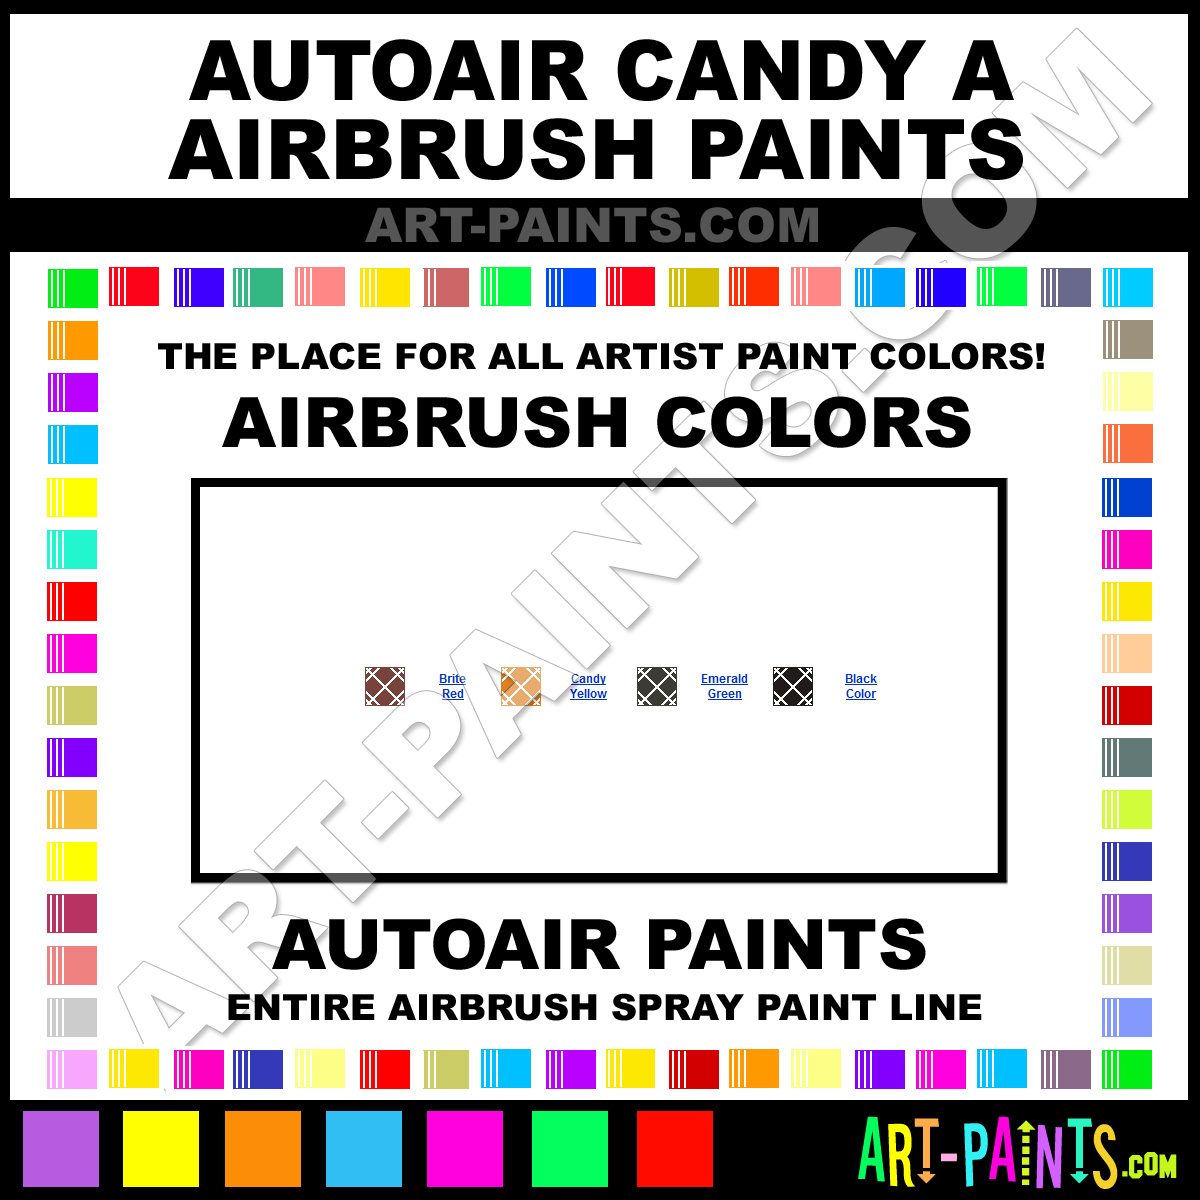 AutoAir Candy A Airbrushs